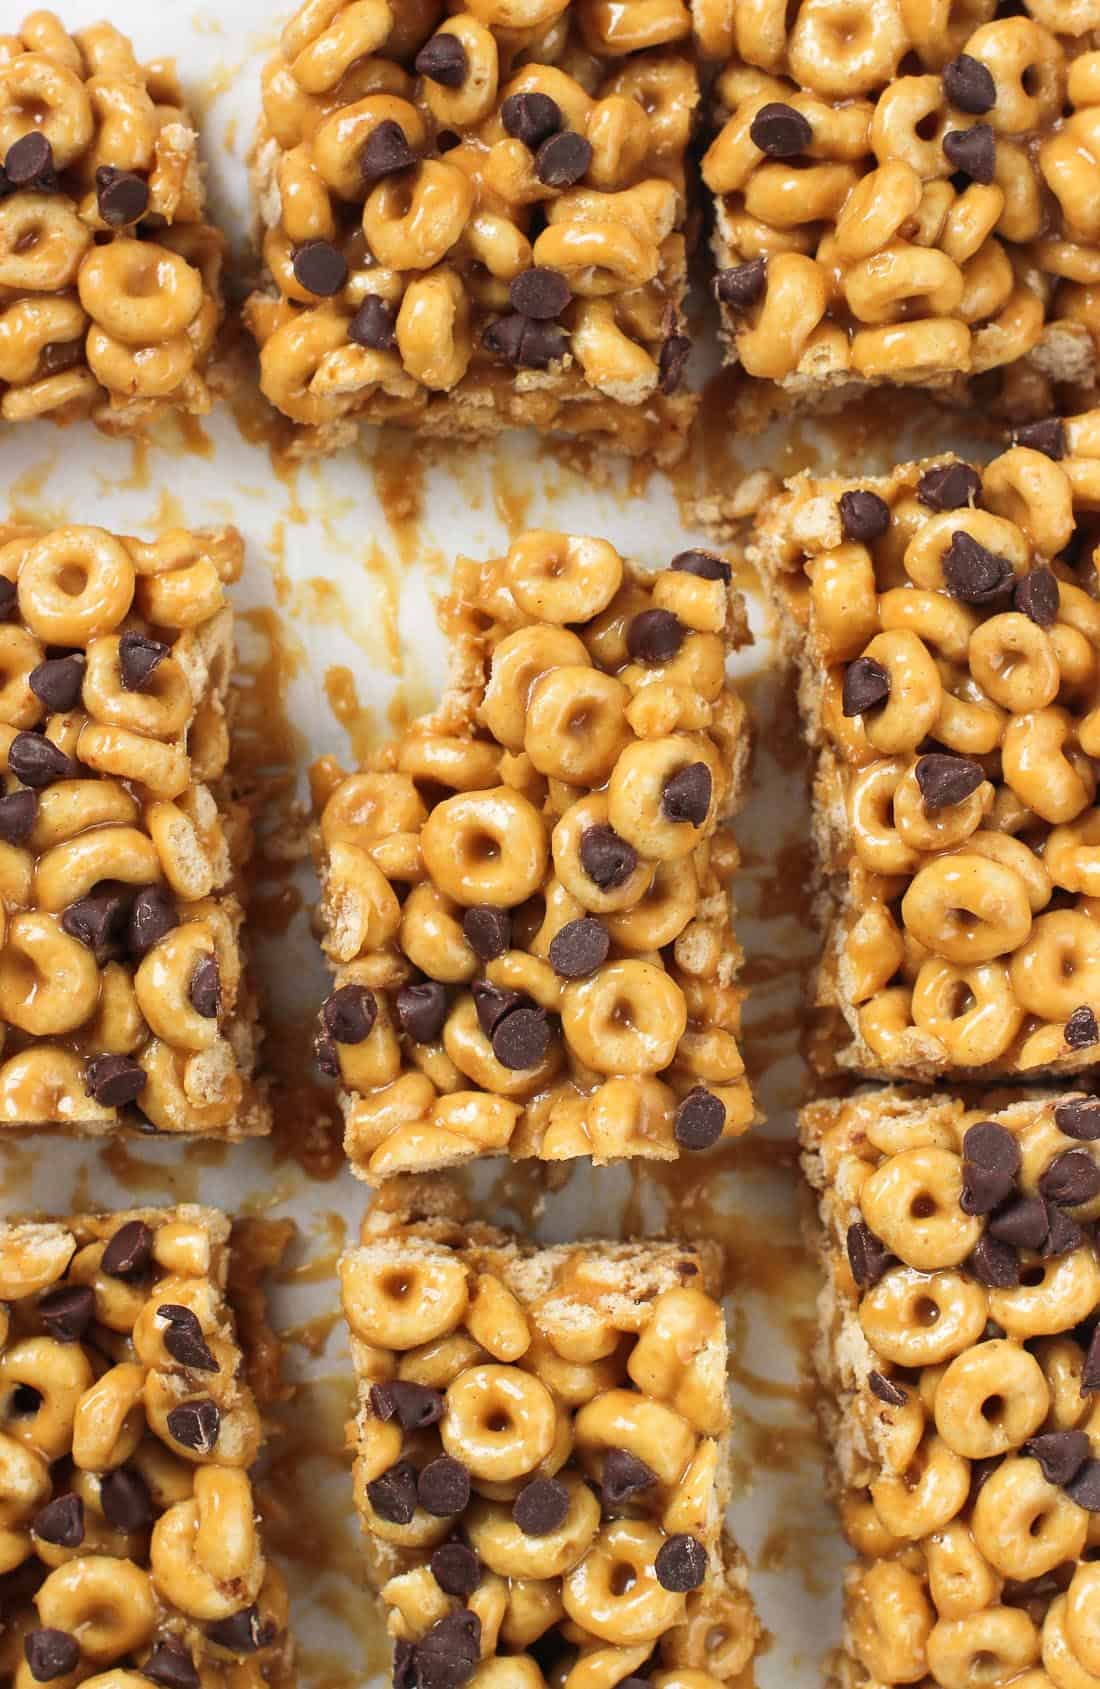 Easy no-bake peanut butter cereal bars are a delicious breakfast or snack recipe made with Honey Nut Cheerios™. Just 4 ingredients!